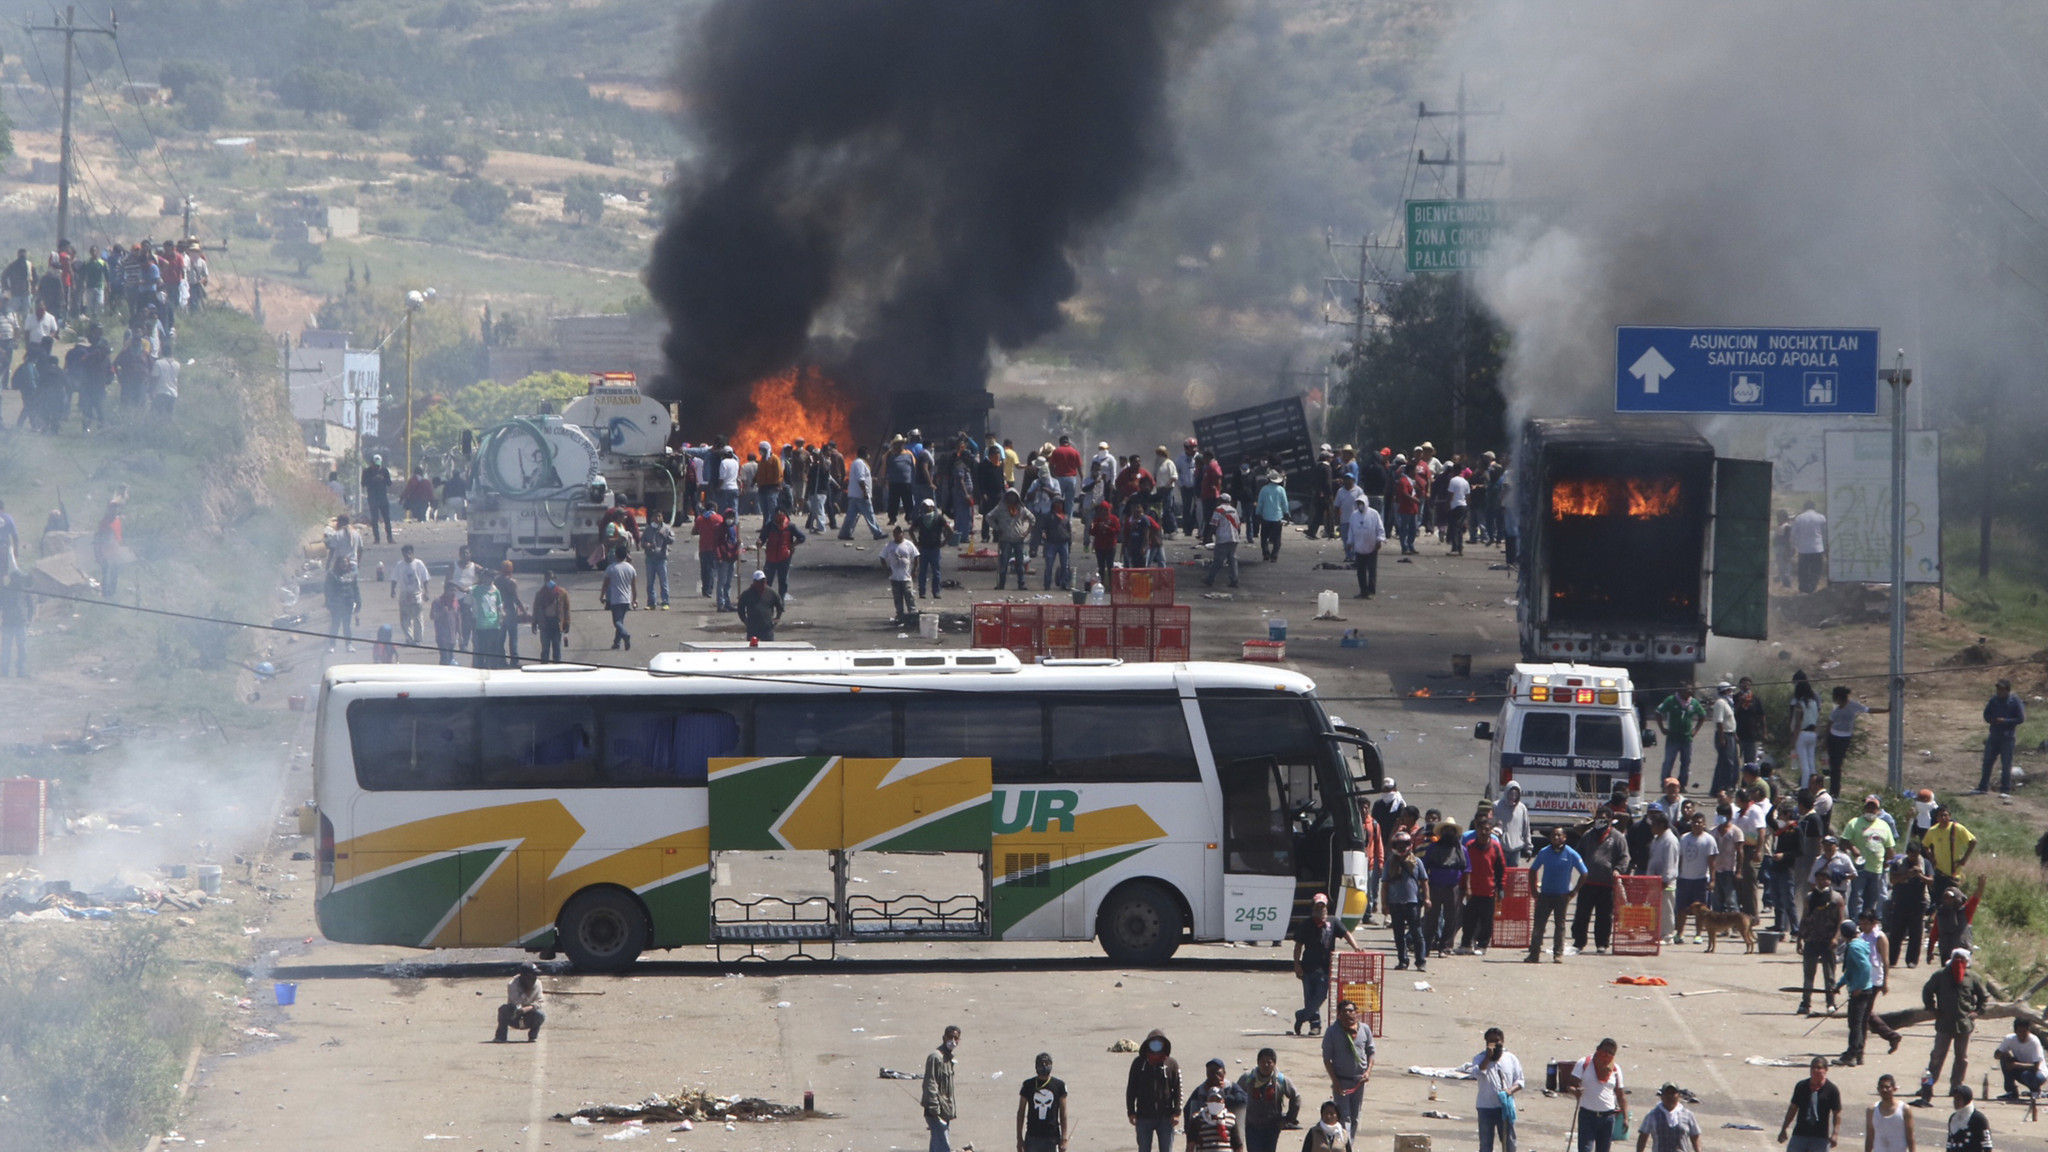 Several vehicles were torched during the unrest in Nochixtlan in June.